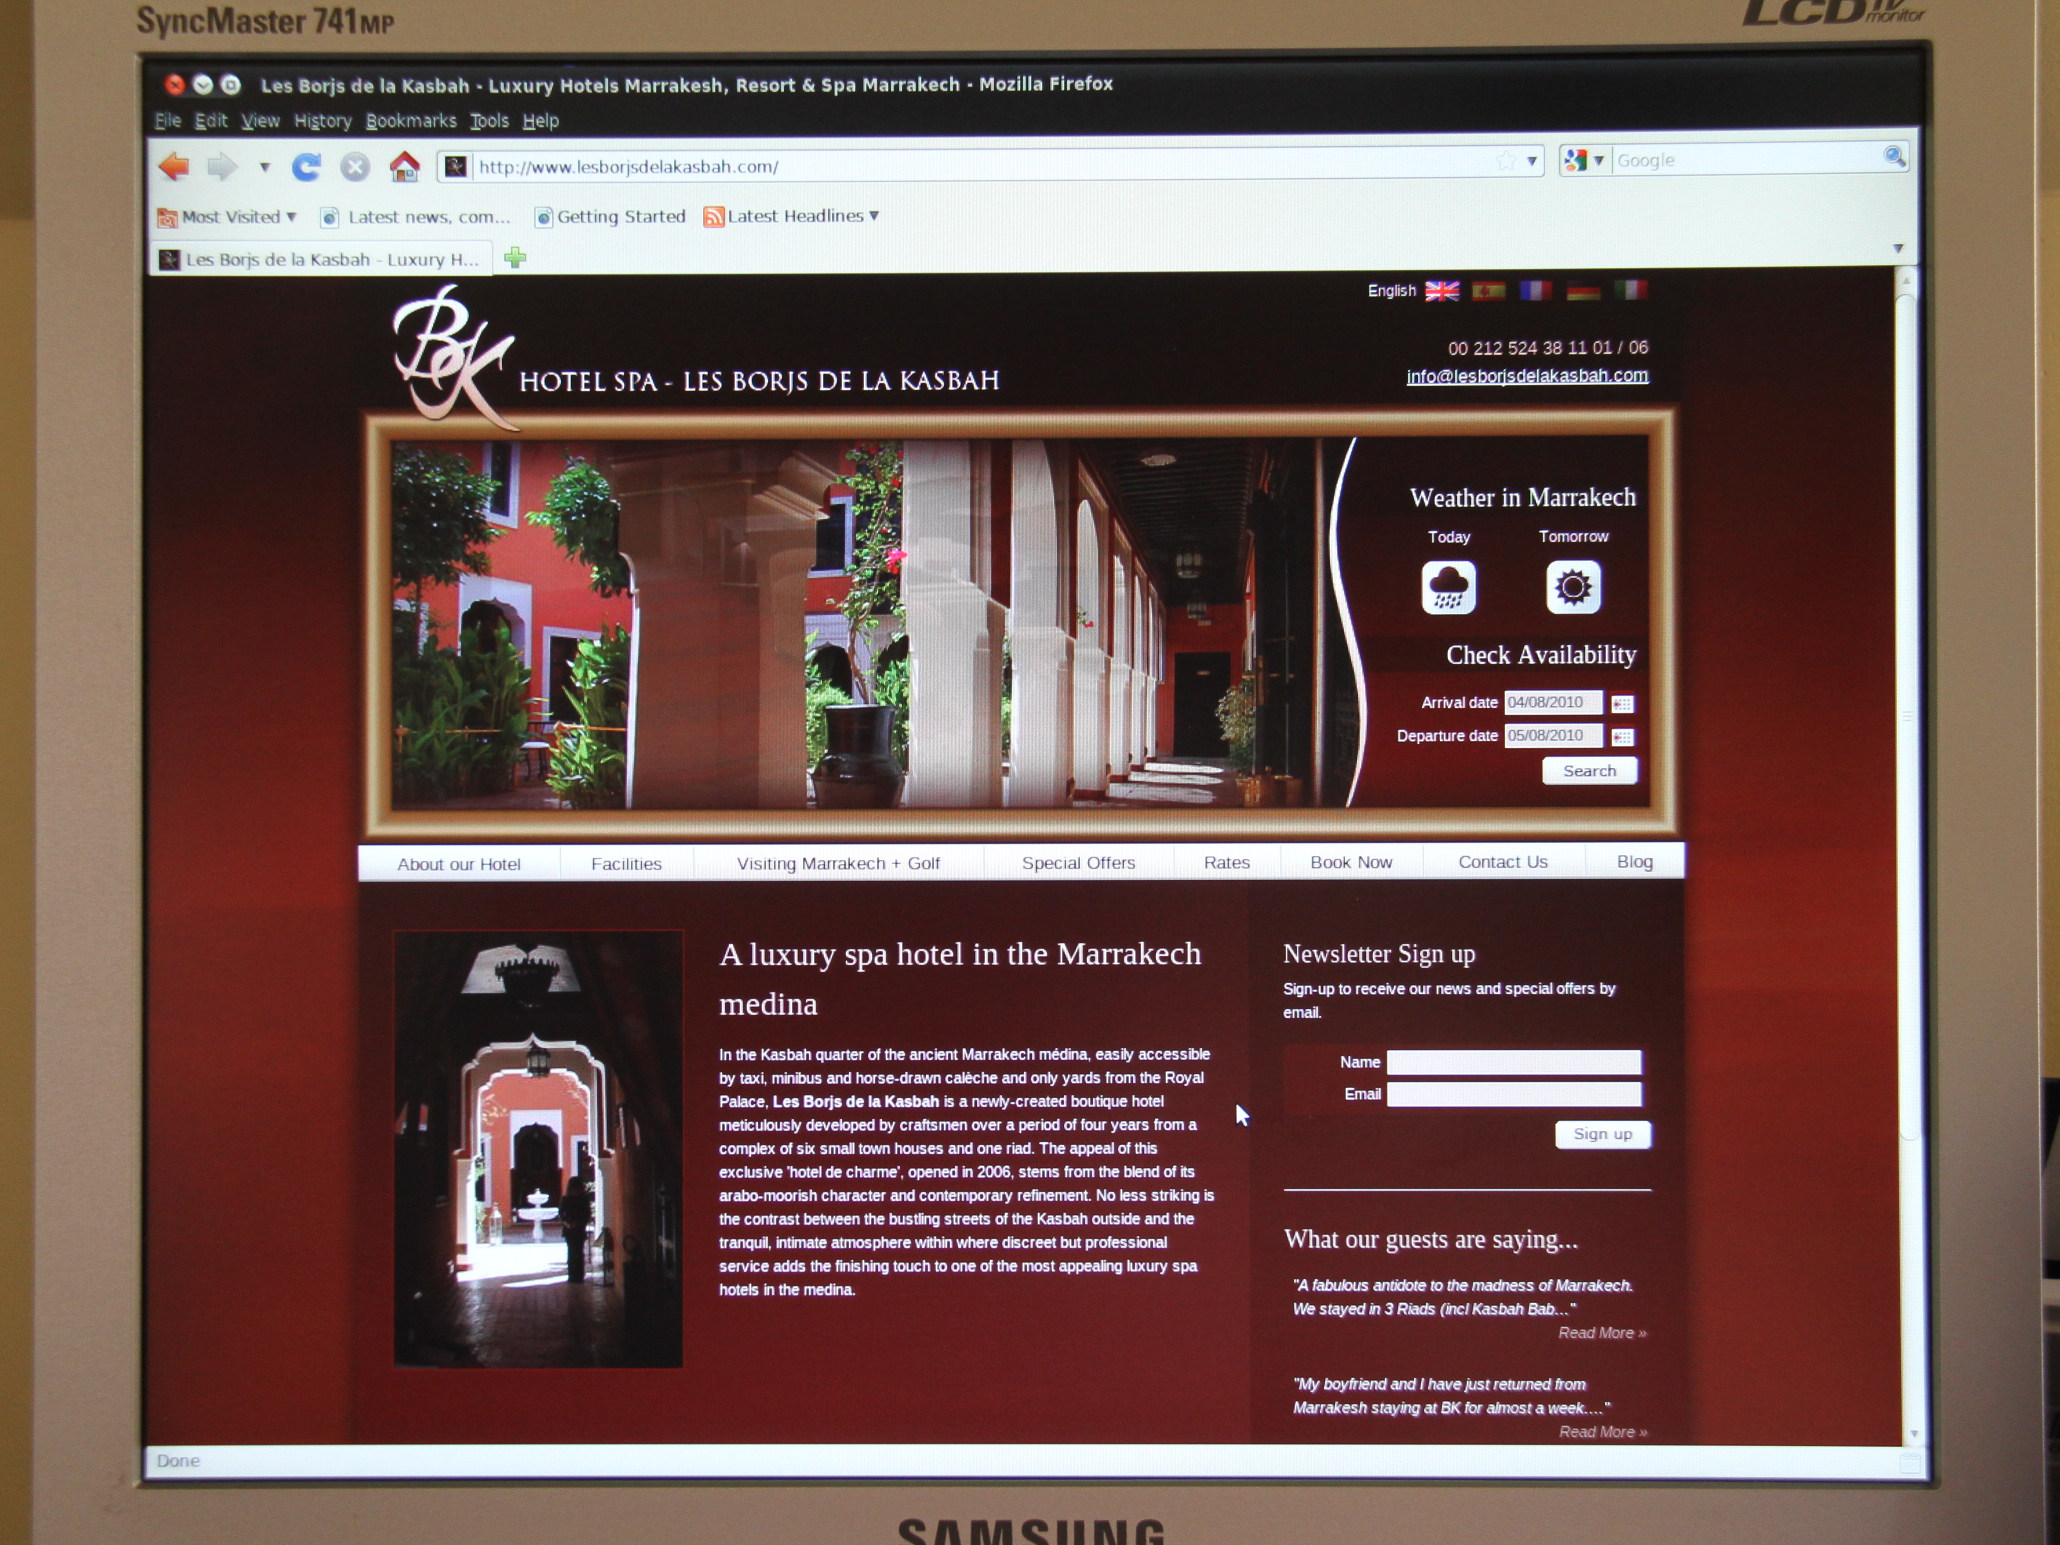 New website for Les Borjs de la Kasbah